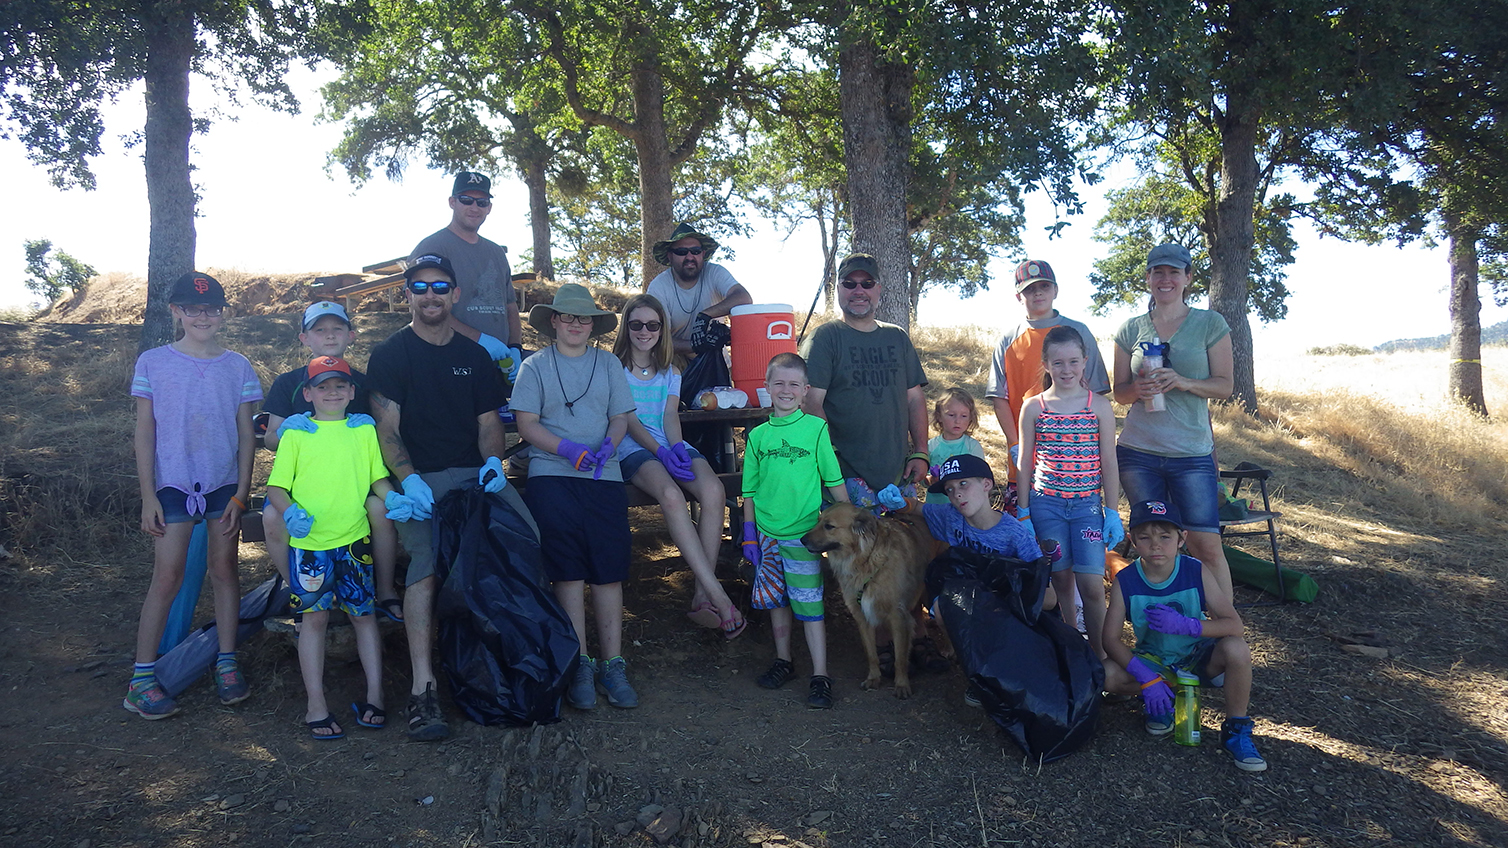 Participants in the 2017 Earth Day Angel Creek trailhead clean-up